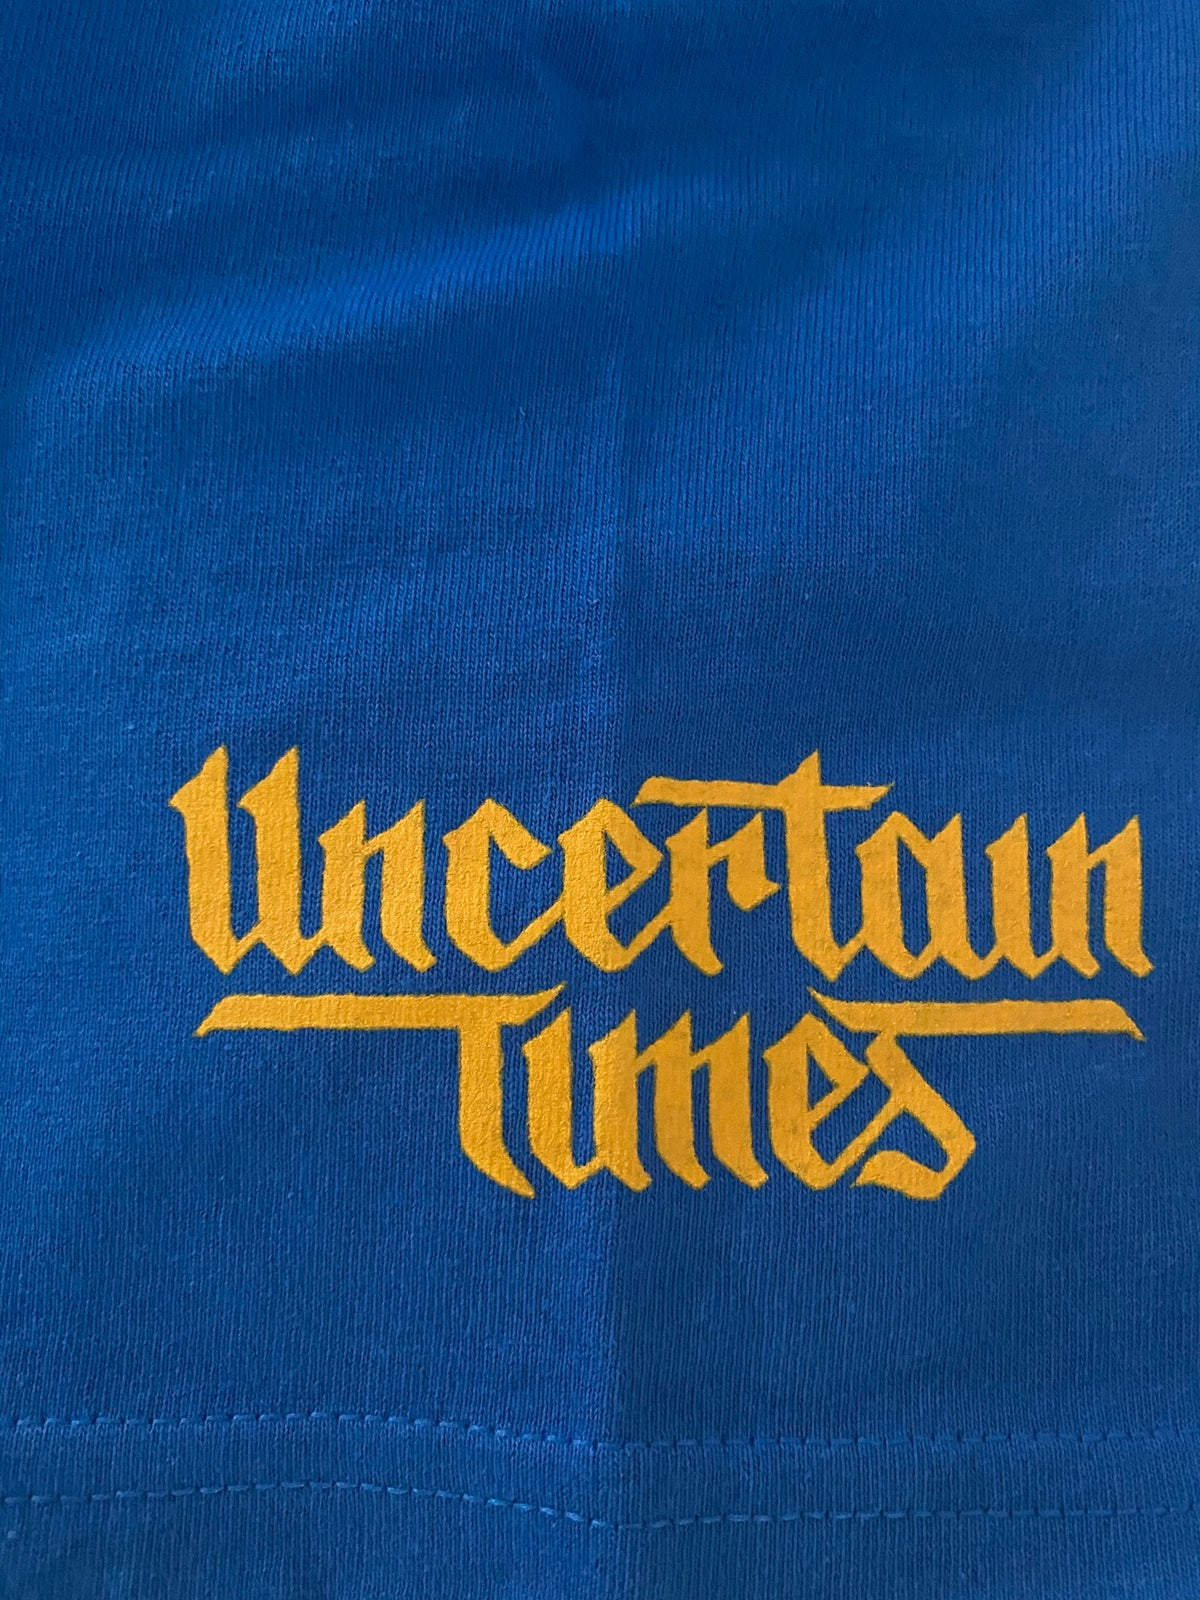 Image of UNCERTAIN TIMES CHARITY TEE - ROYAL BLUE